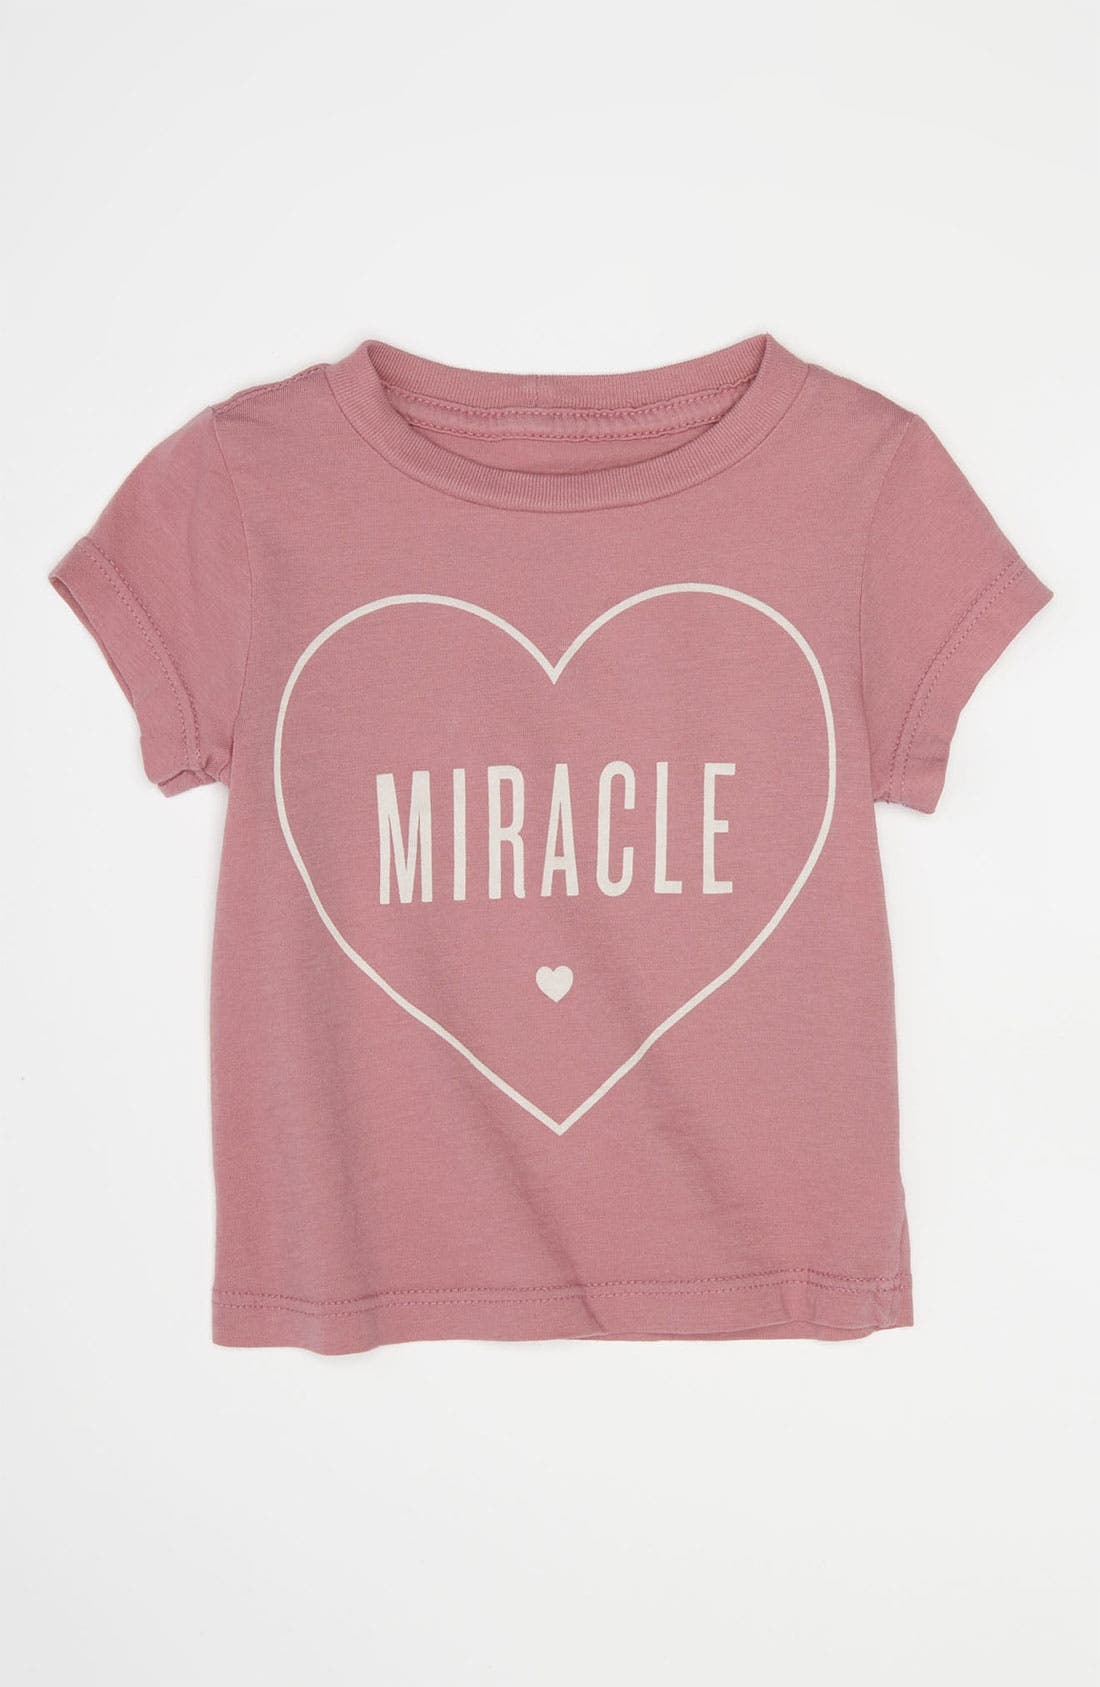 Main Image - Peek 'Little Peanut - Miracle' Tee (Baby)